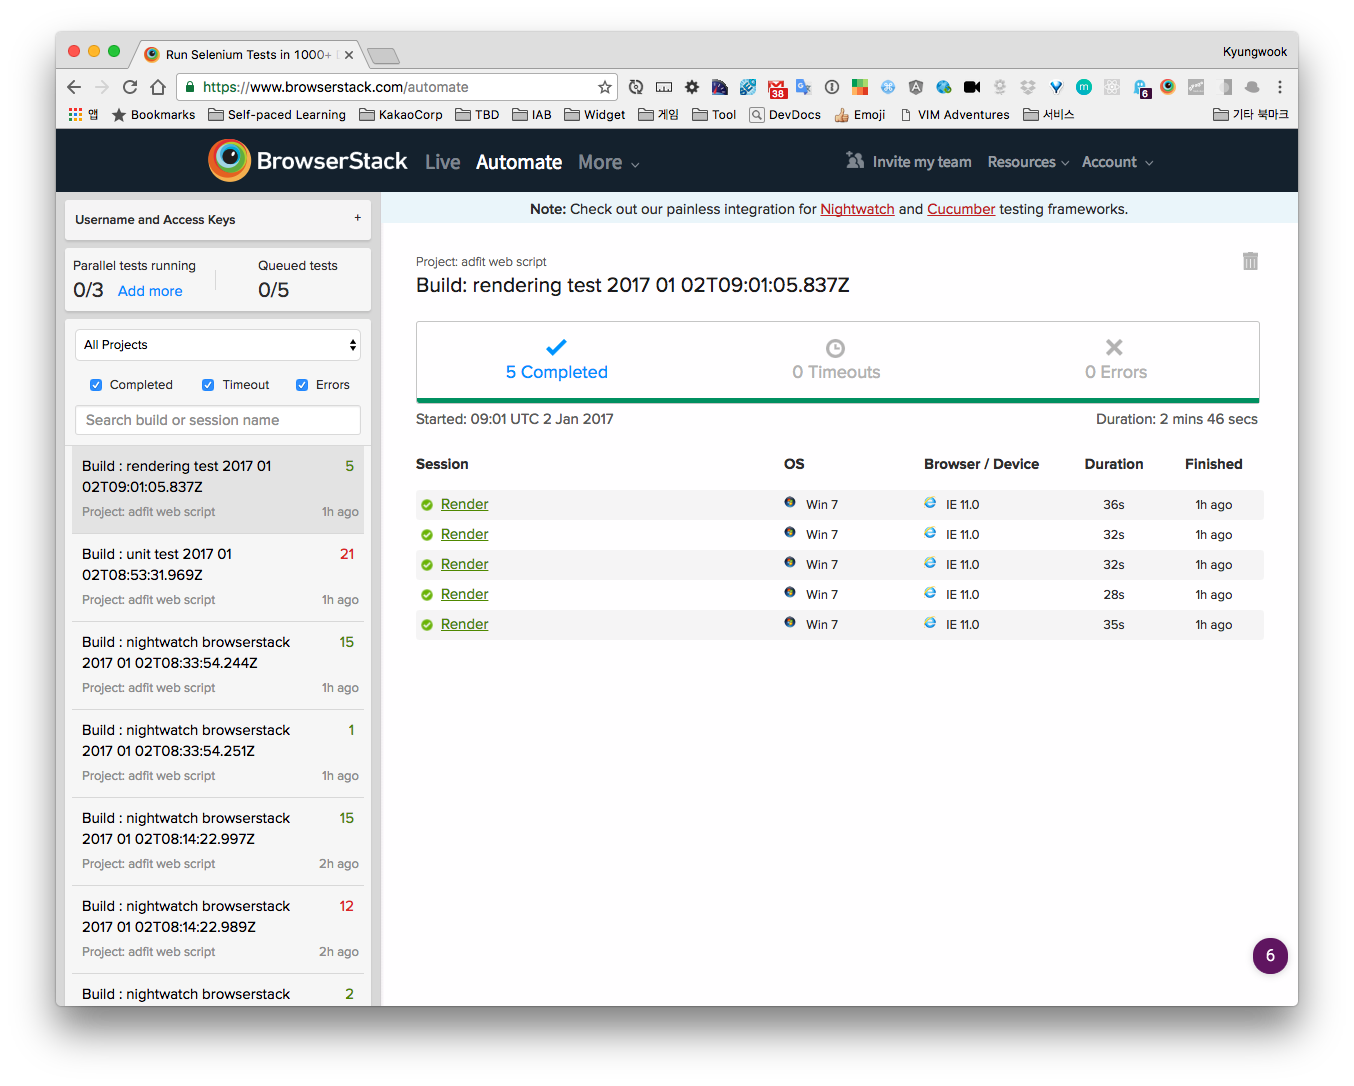 browserstack-automate-dashboard